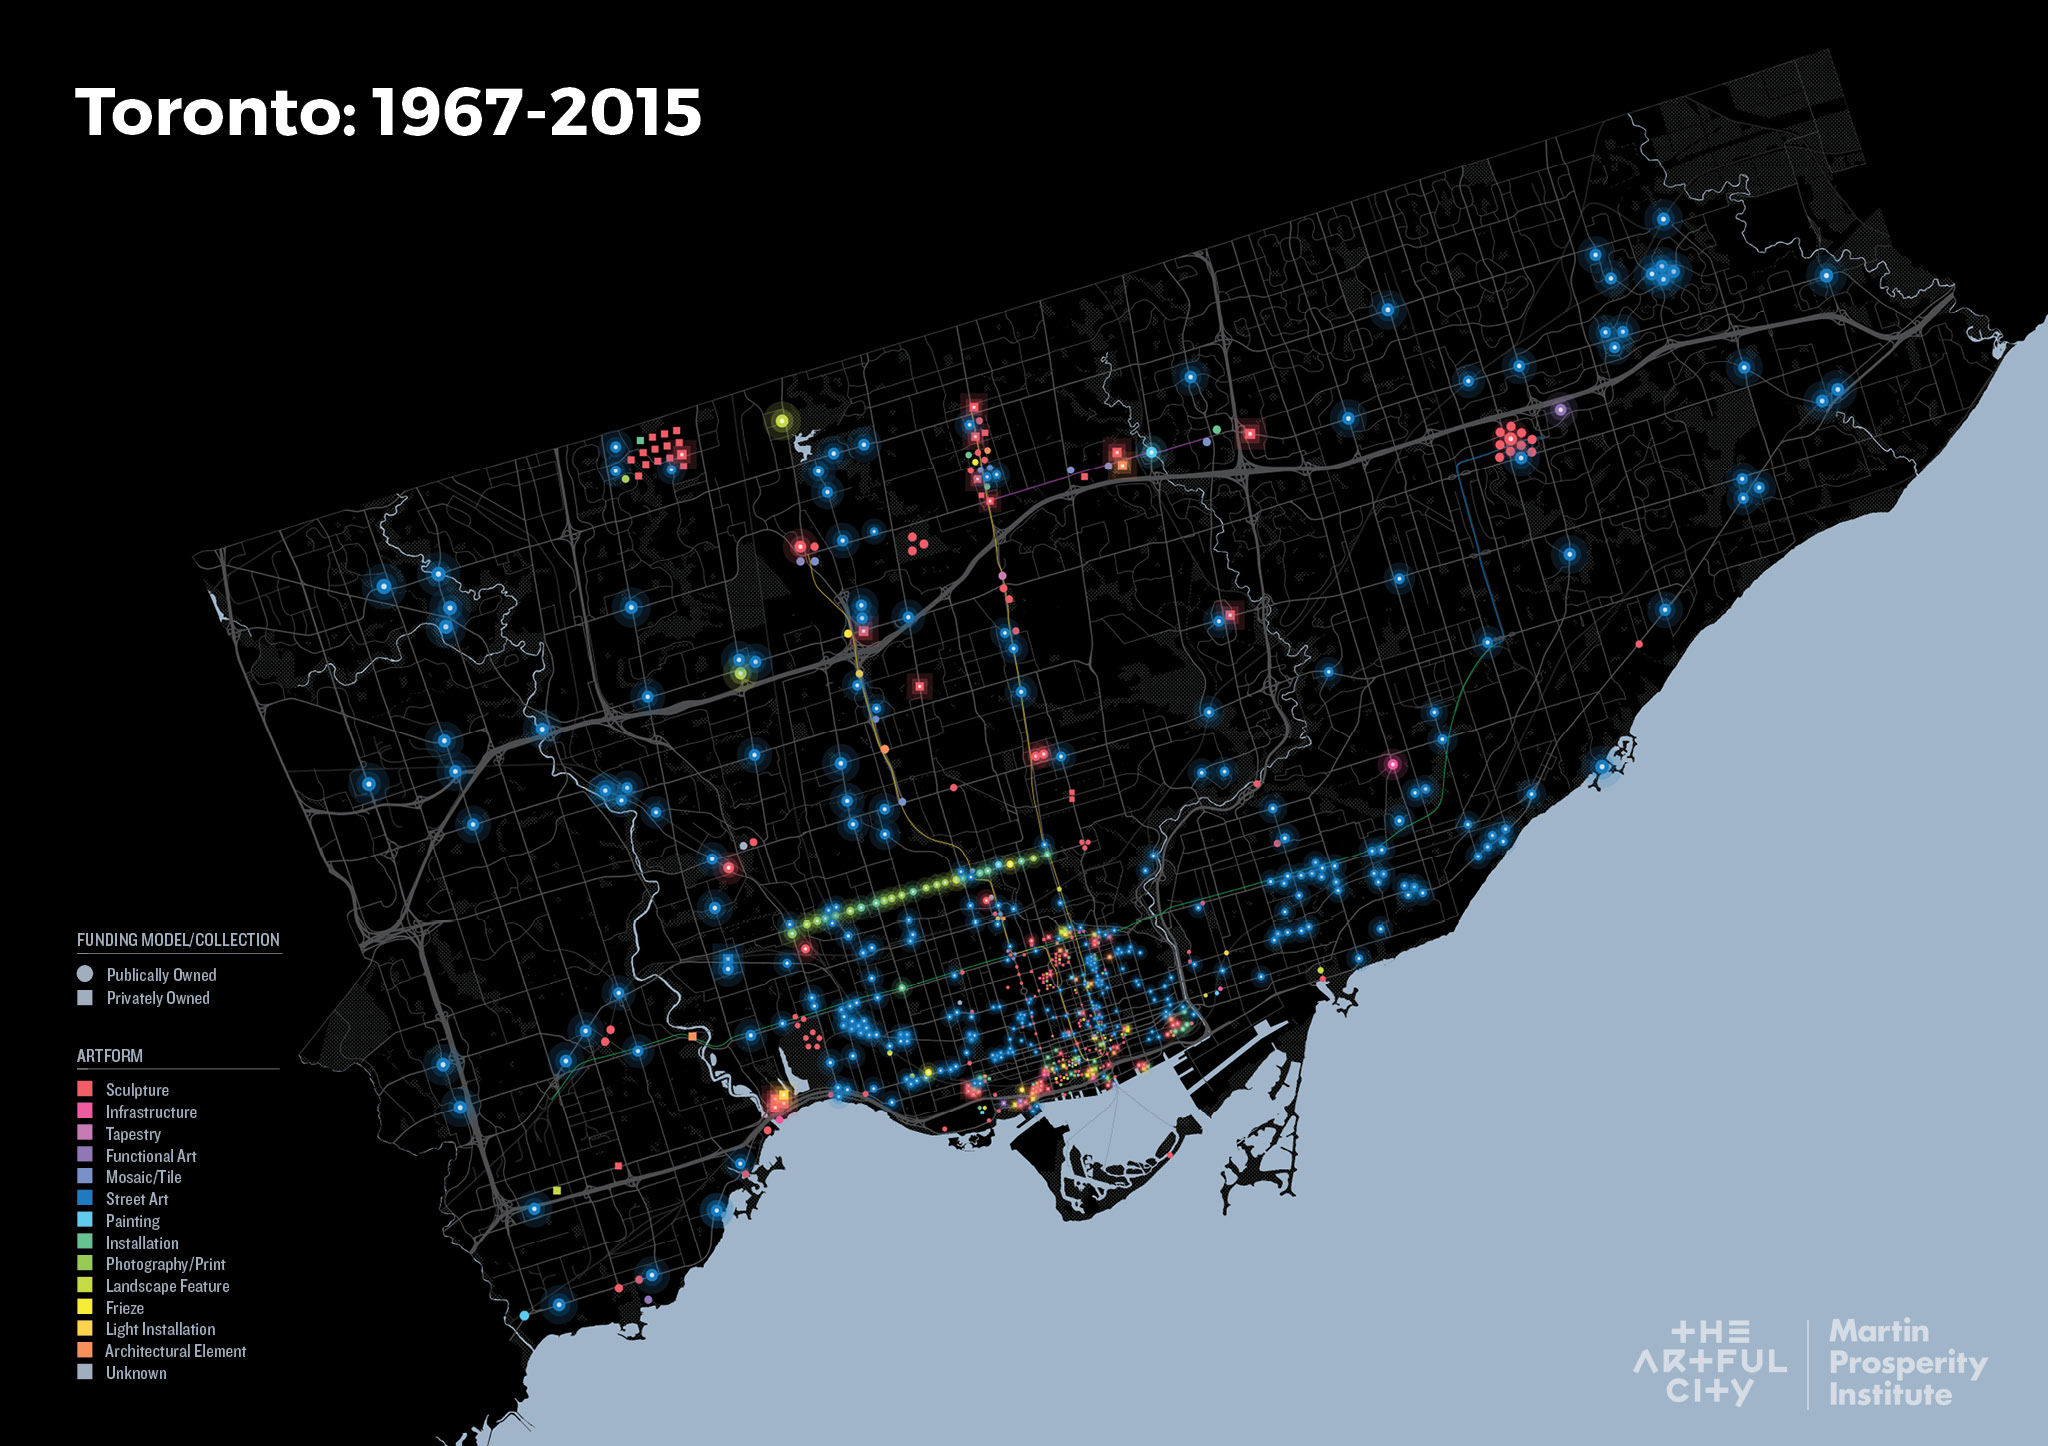 Artful City Map_1967-20153.jpg